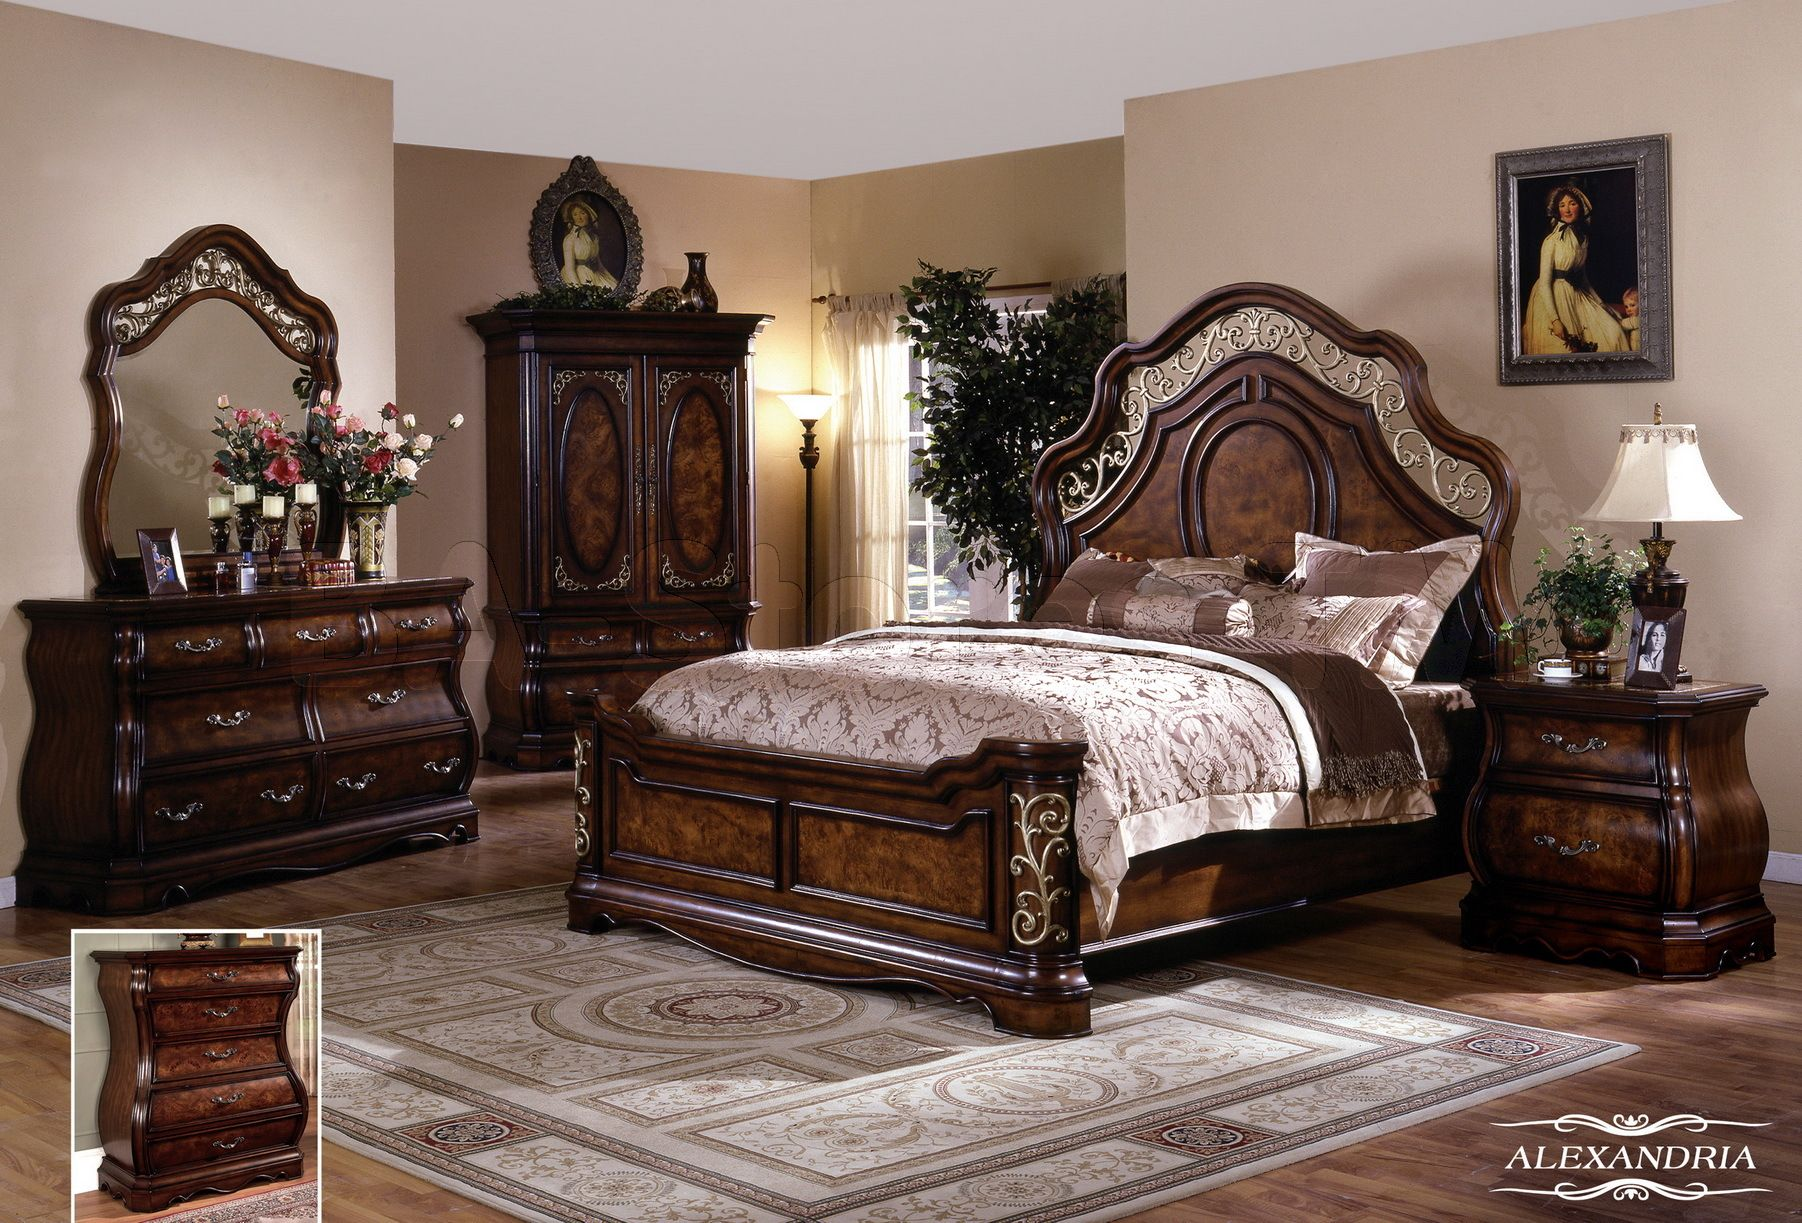 Alexandria 5 PC Bedroom Set Queen Bed Dresser Mirror